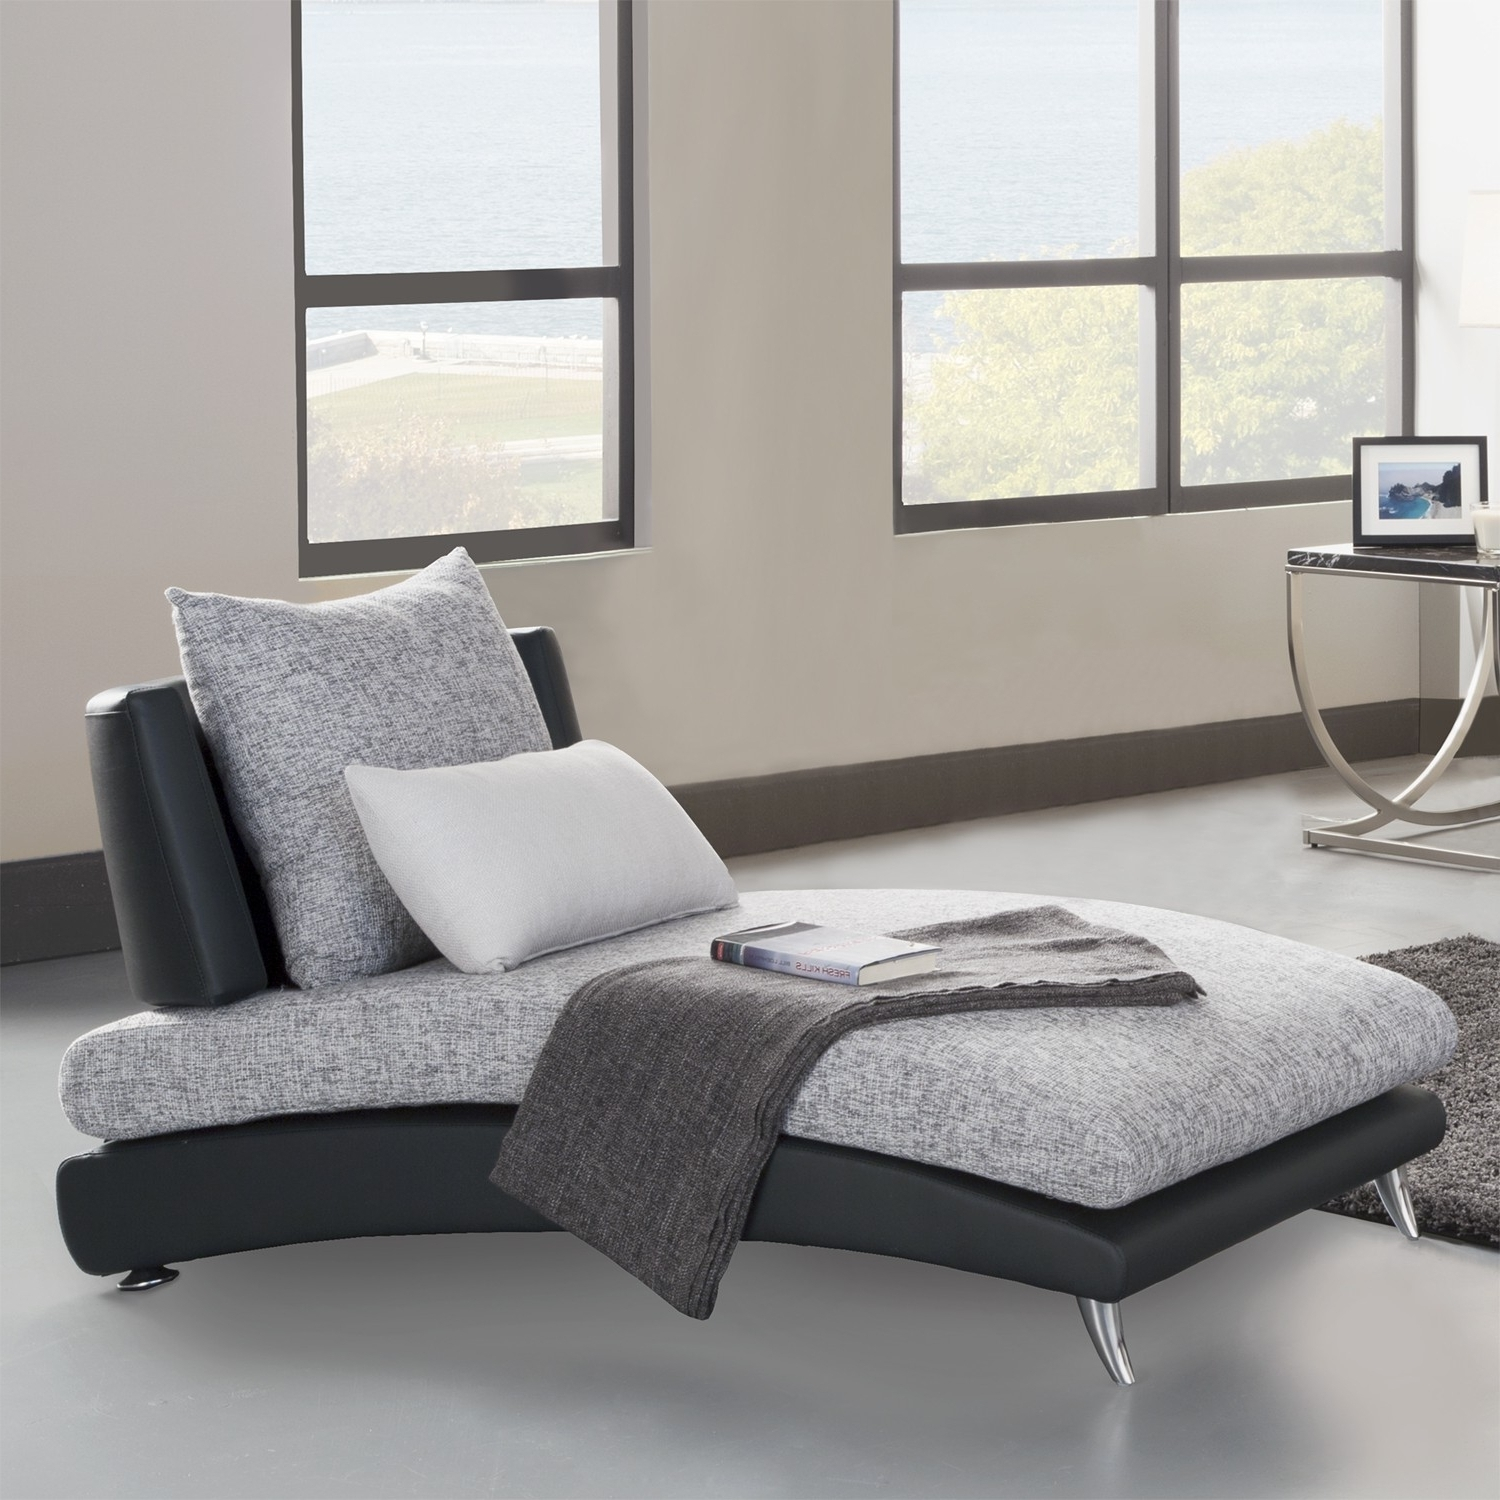 Preferred Chaise Chairs For Bedroom Inside Lounge Chair : Bedroom Chaise Lounge Chairs For Best Attractive (View 14 of 15)